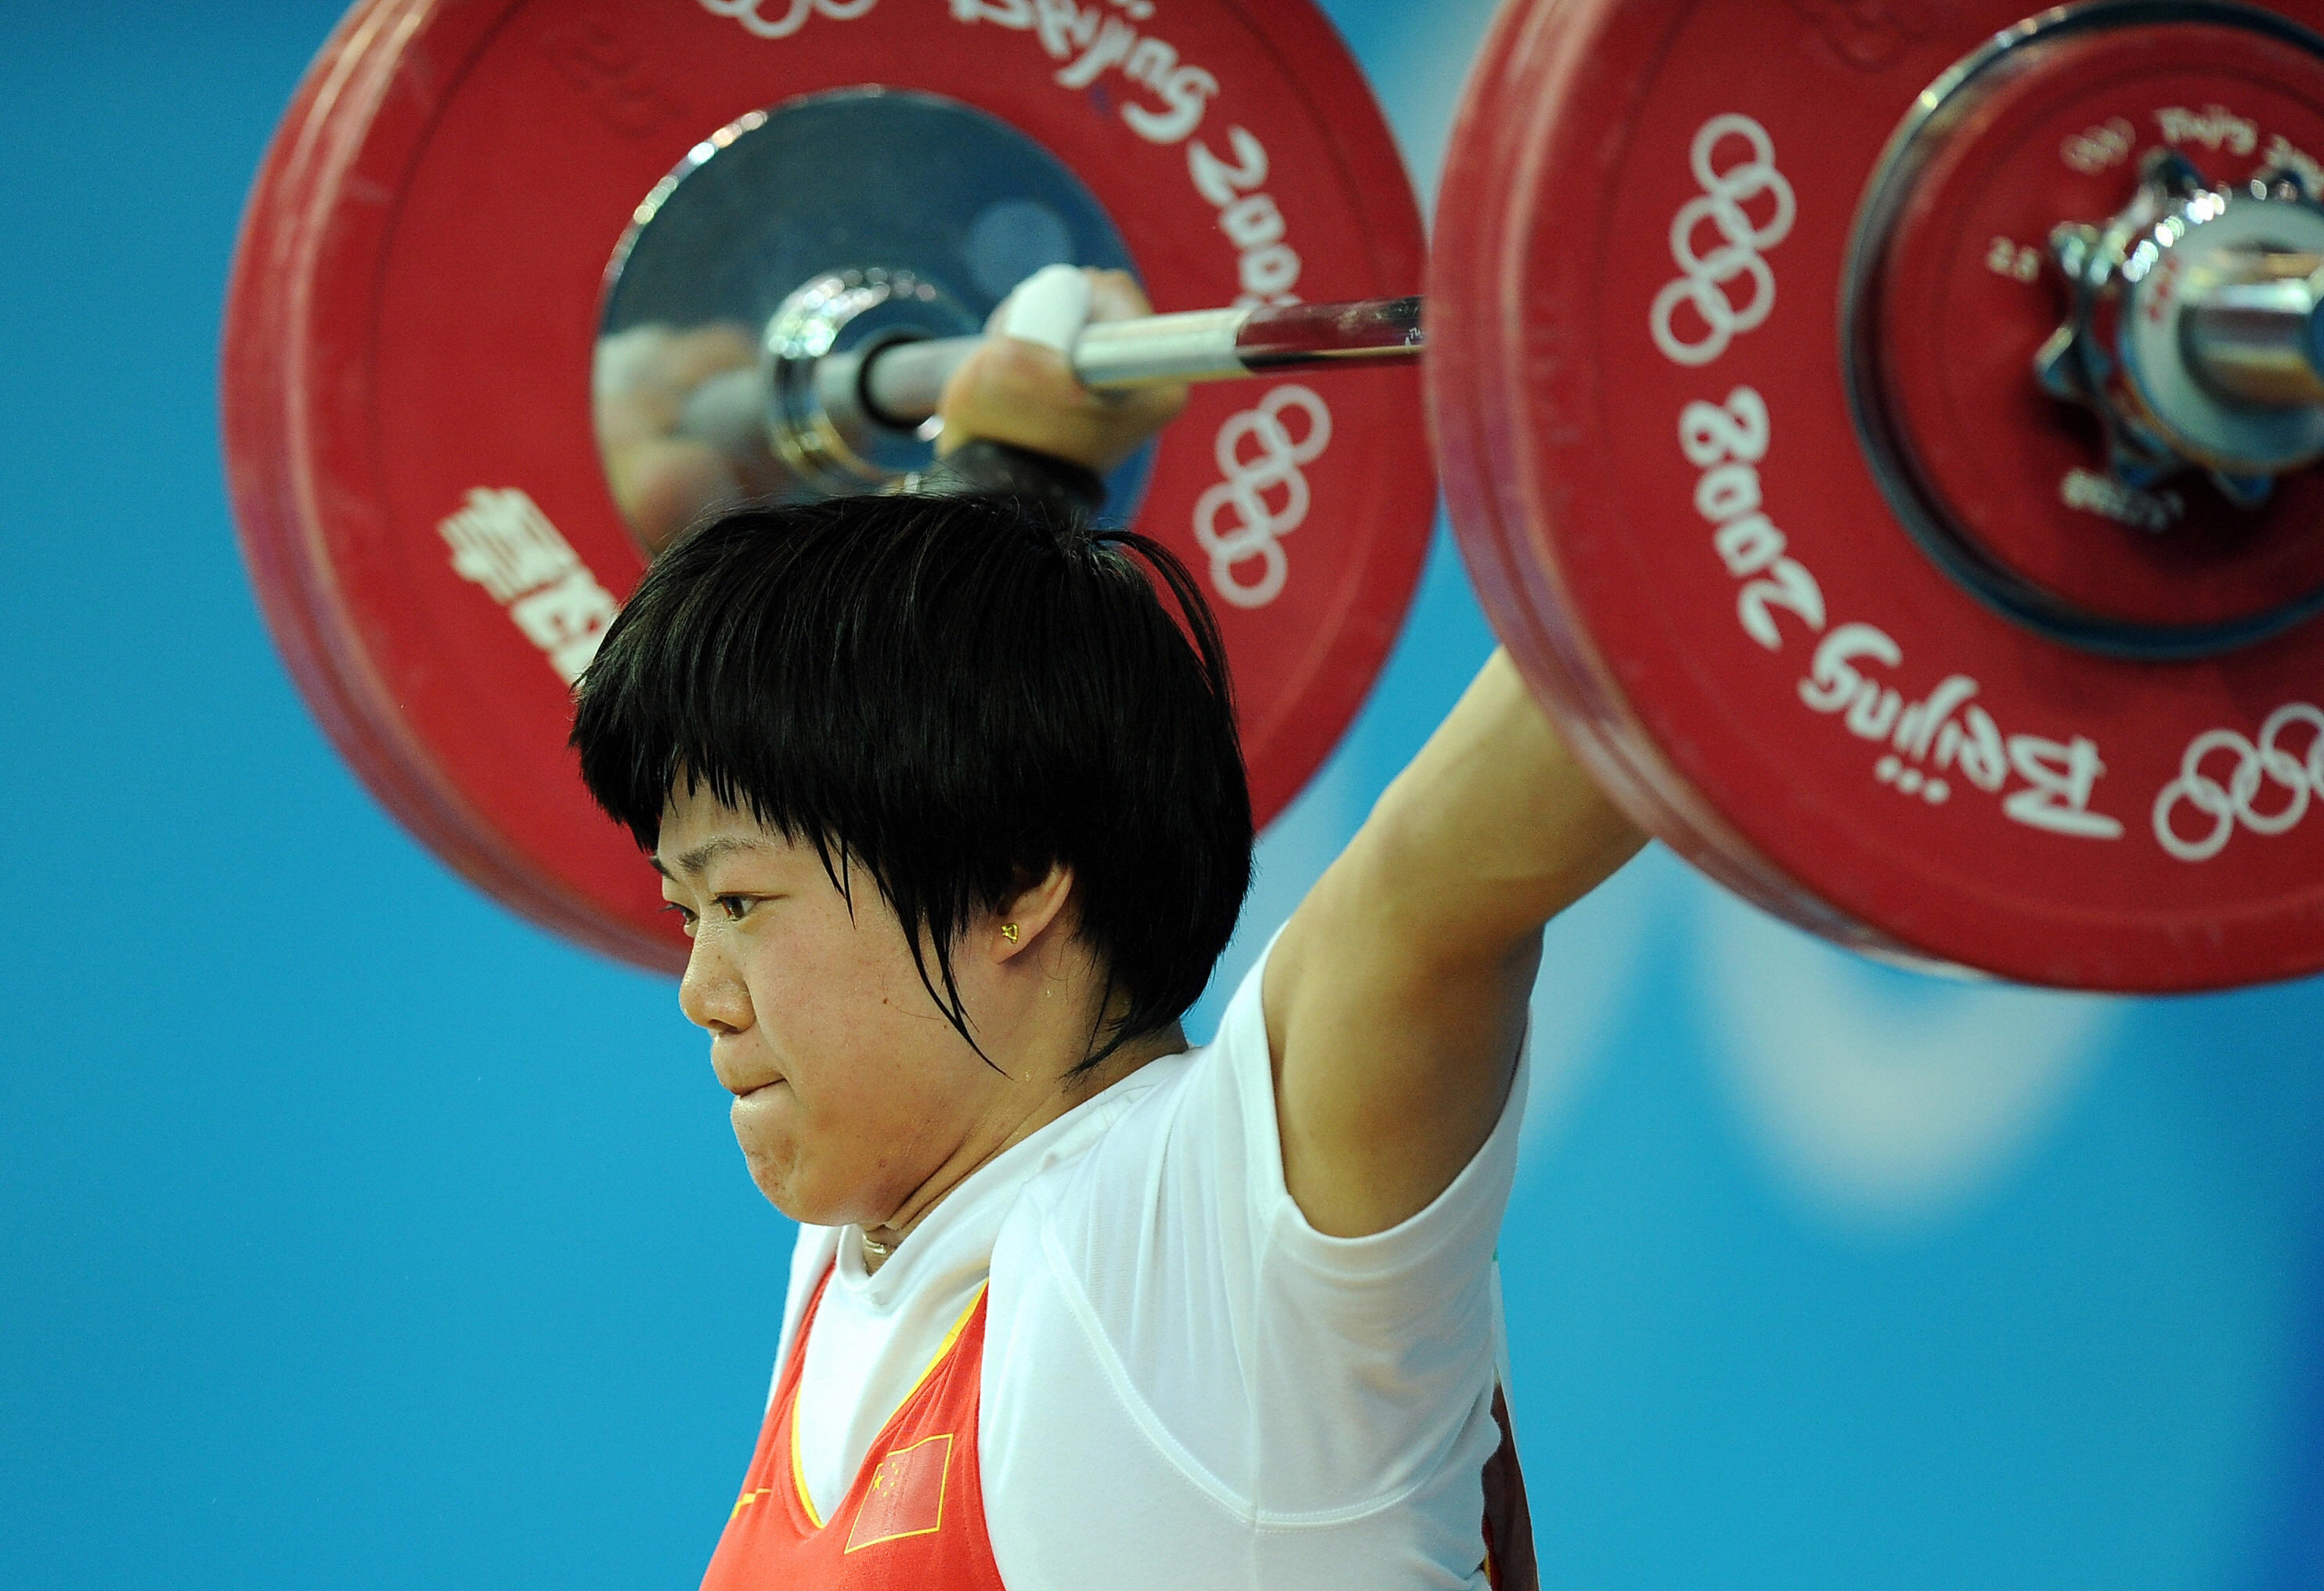 Liu Chunhong of China sets a new world record in the 125-kg snatch of the women's 69-kg weightlifting event at the Olympic Games in Beijing on Aug. 13, 2008